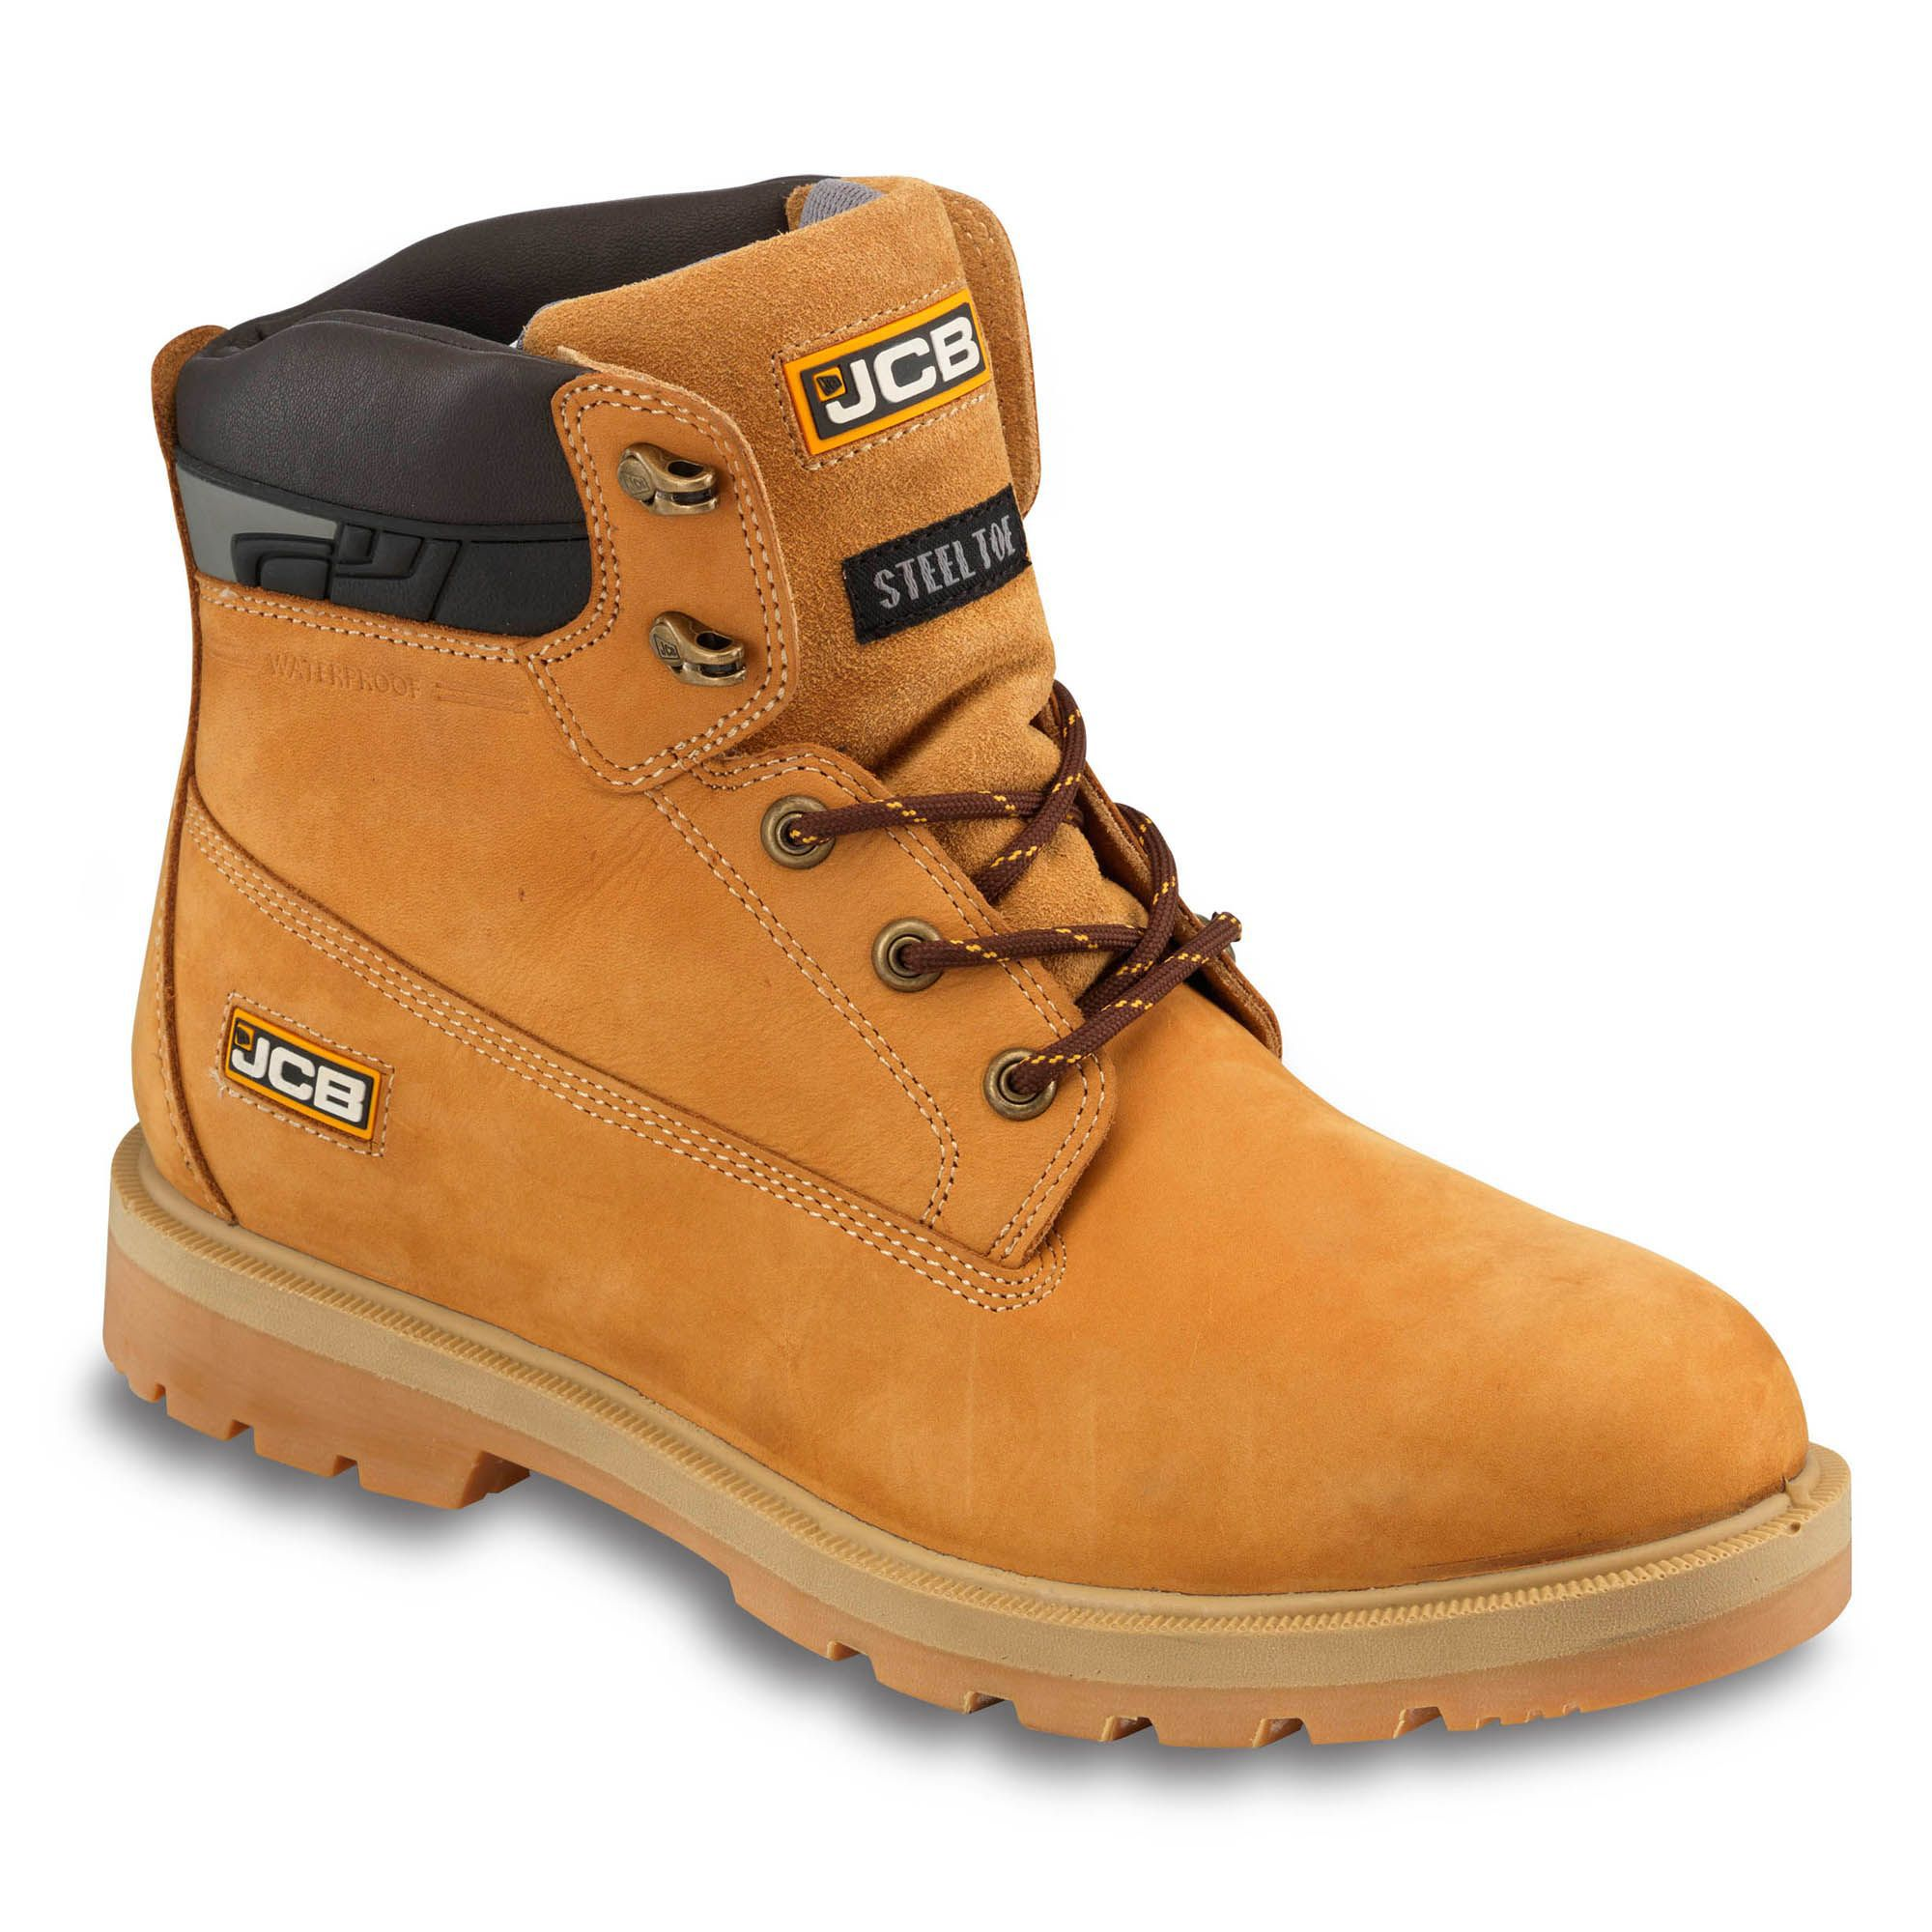 Jcb Honey Protector Safety Boots, Size 12